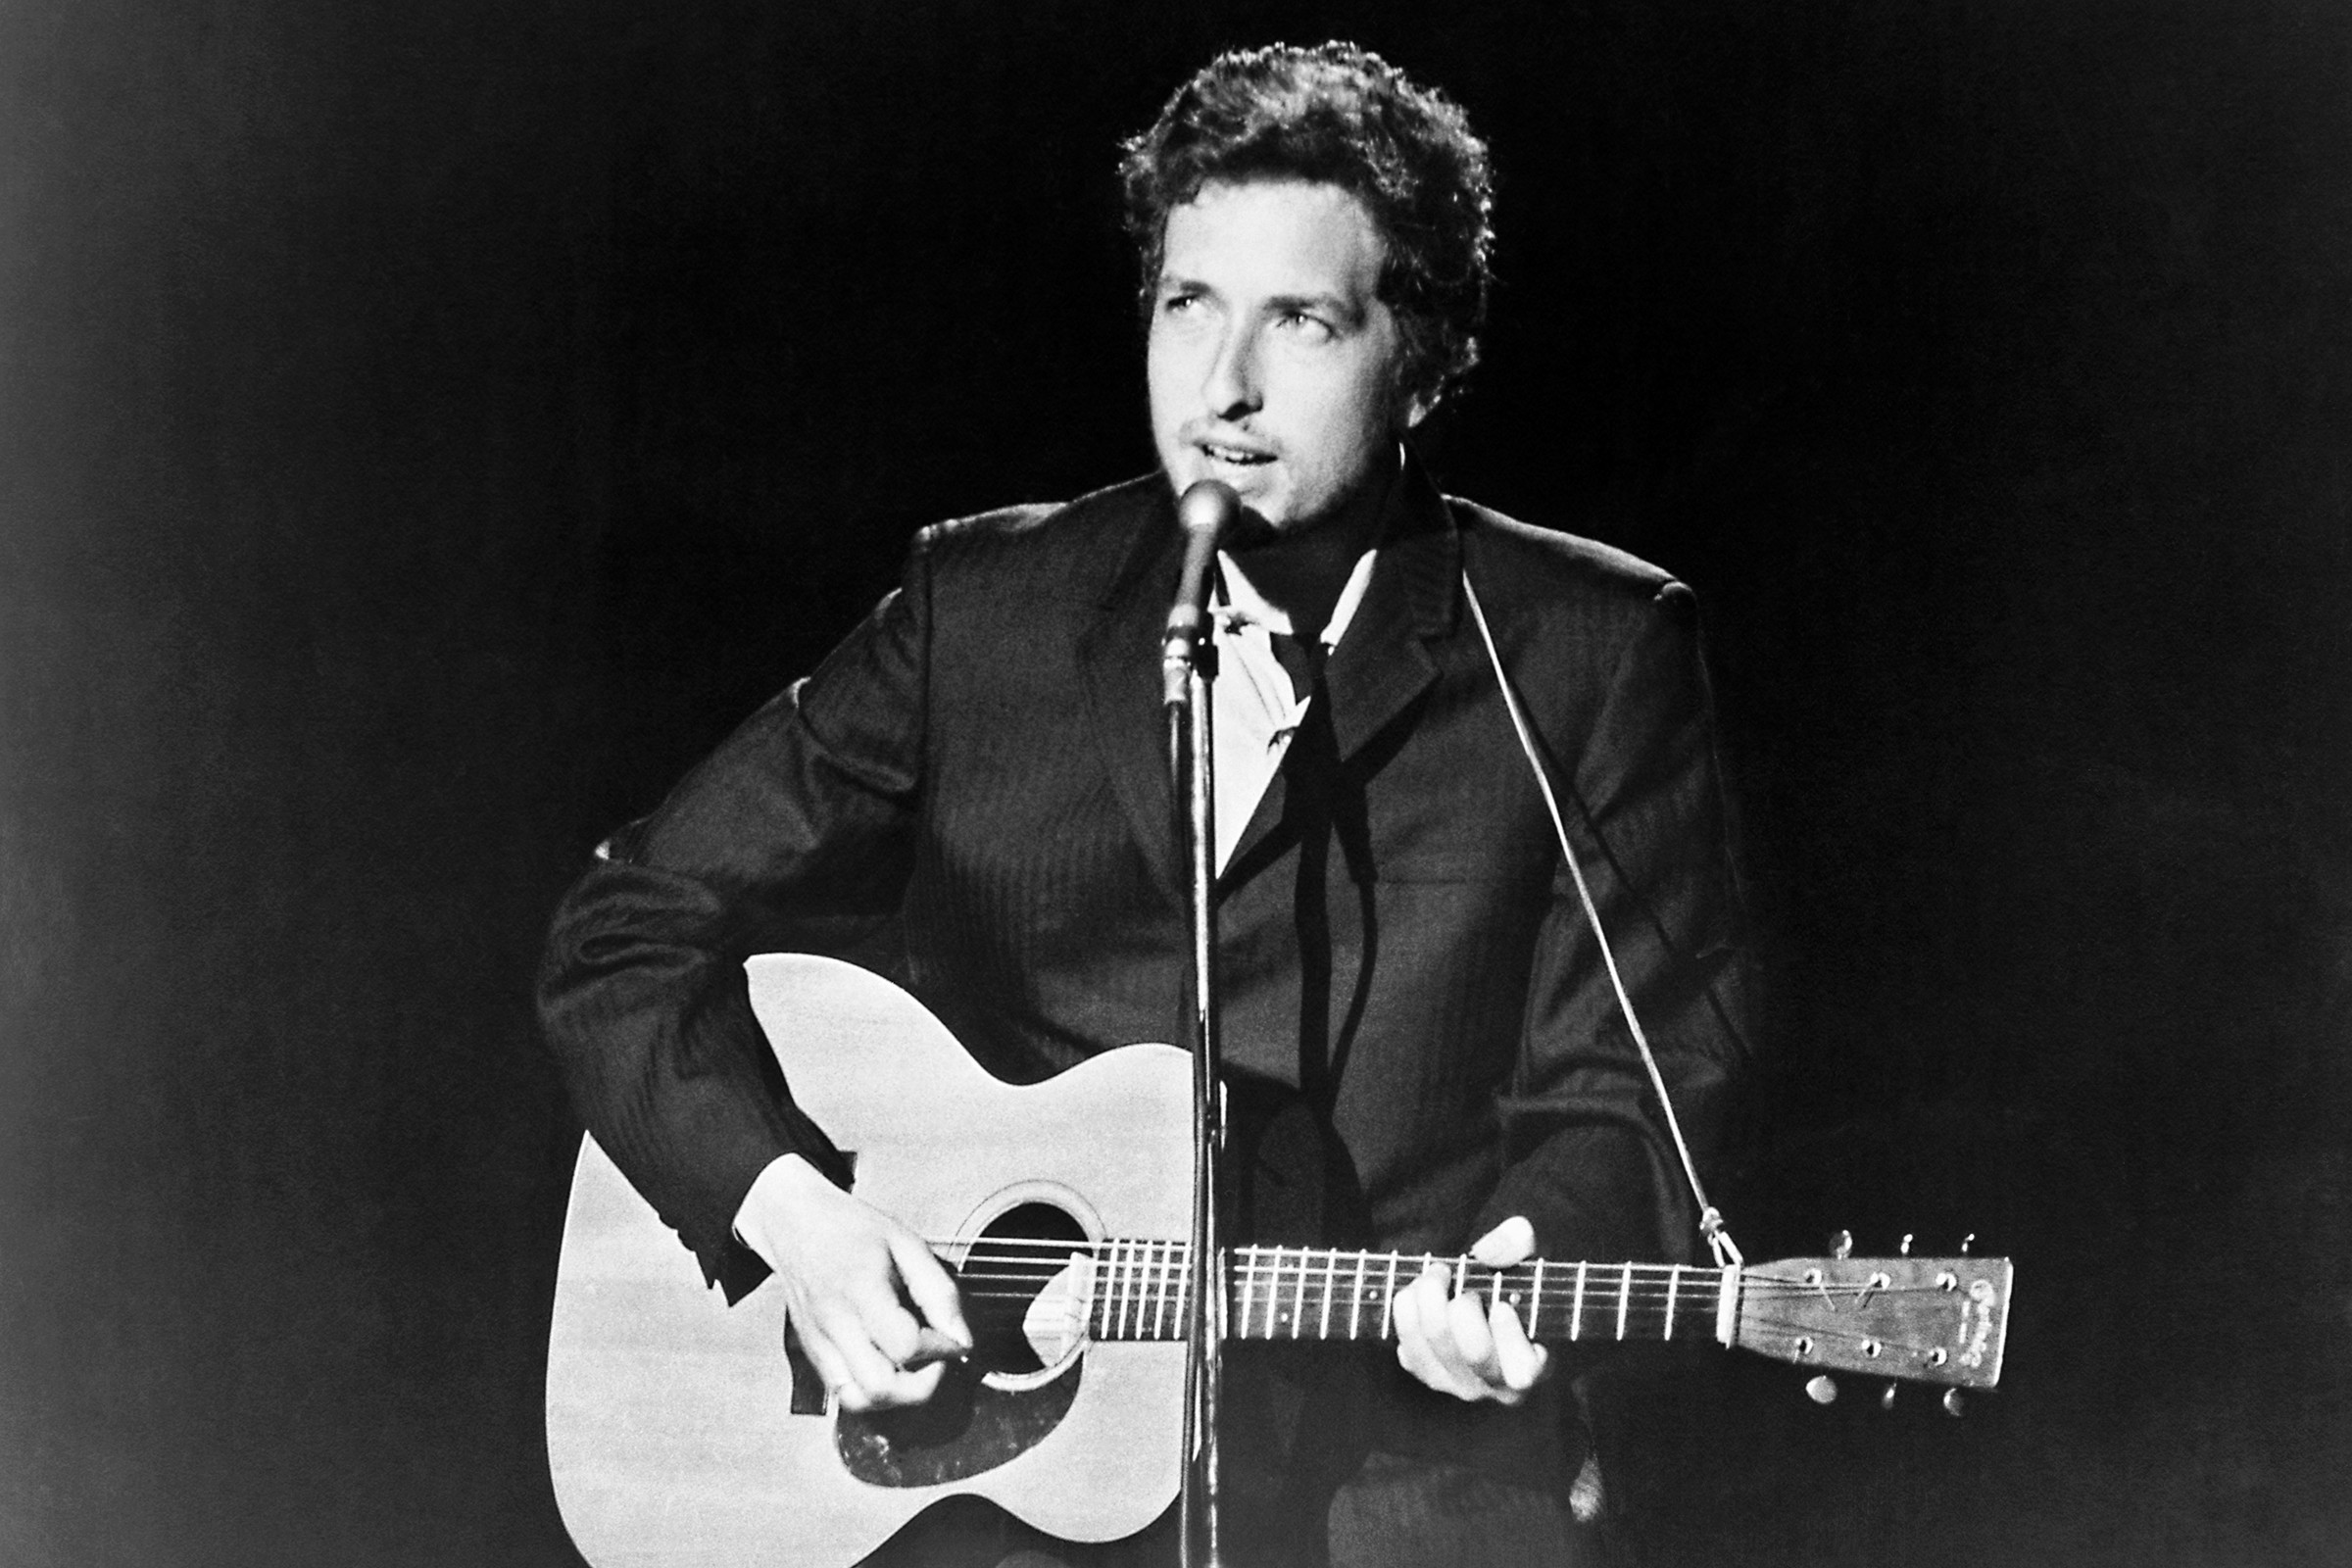 Bob Dylan's 'Nashville Skyline': 10 Things You Didn't Know